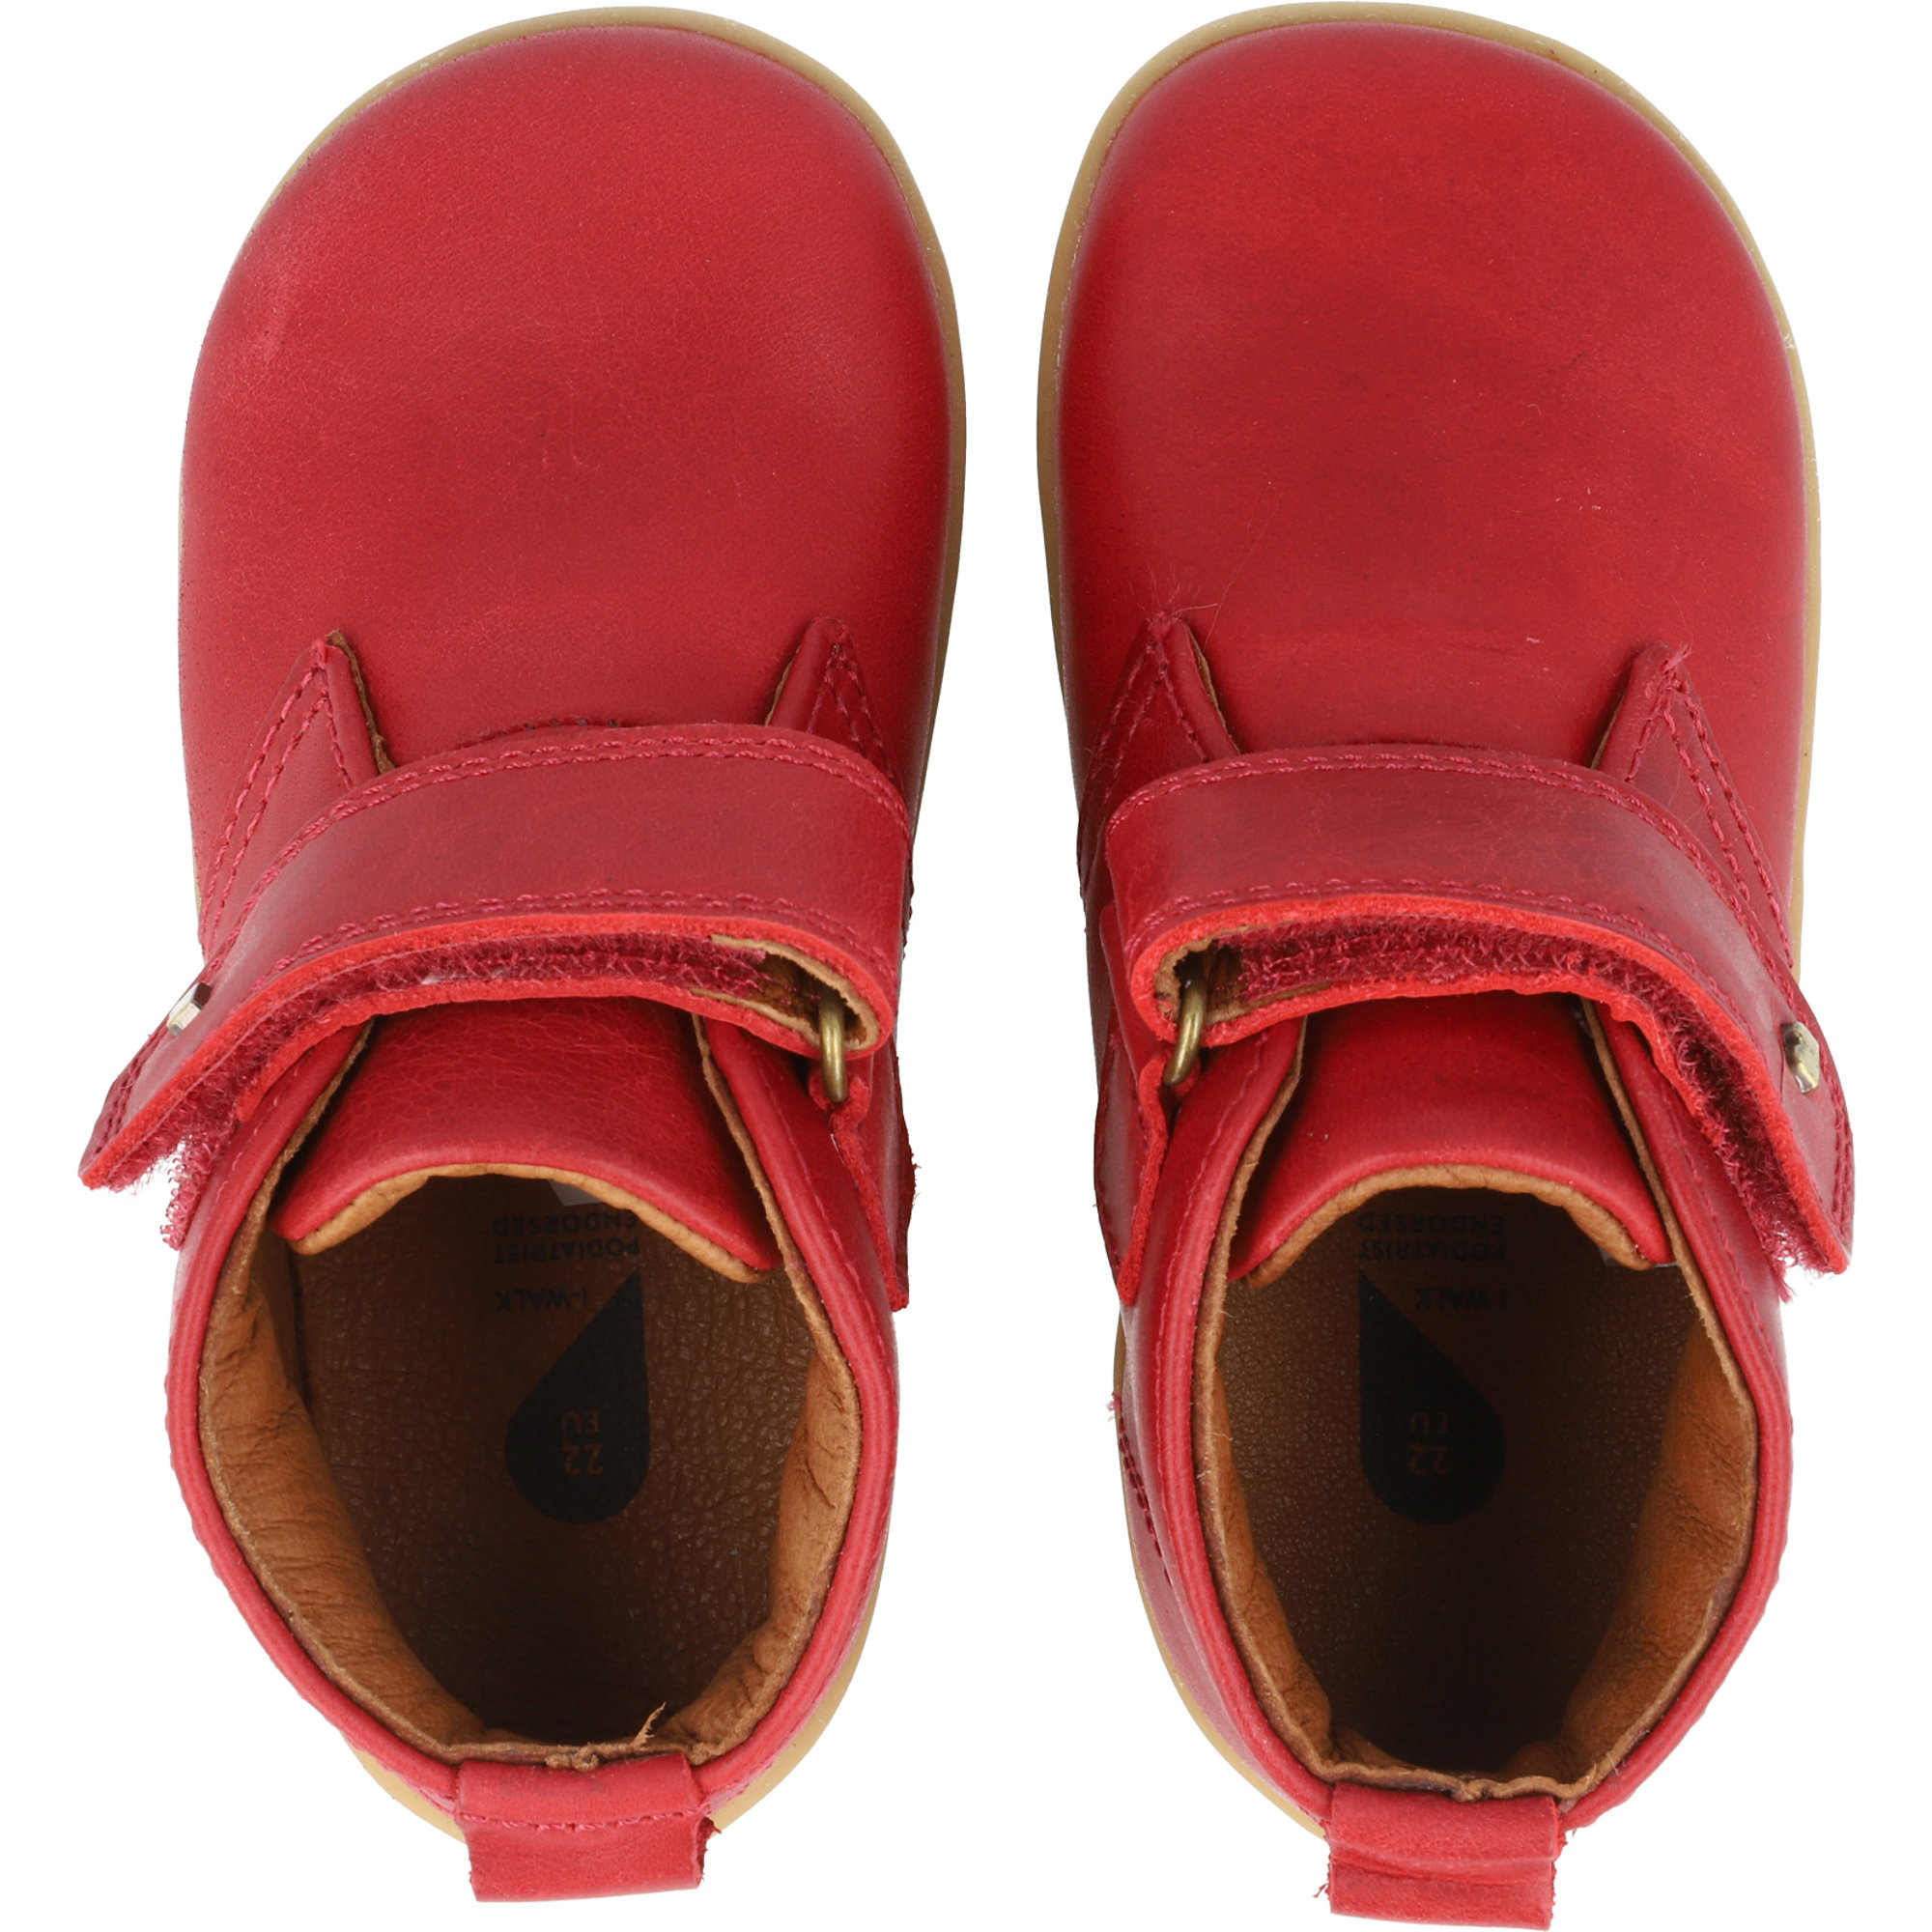 Bobux i-Walk Desert Rio Red Quickdry Vintage-Look Leather